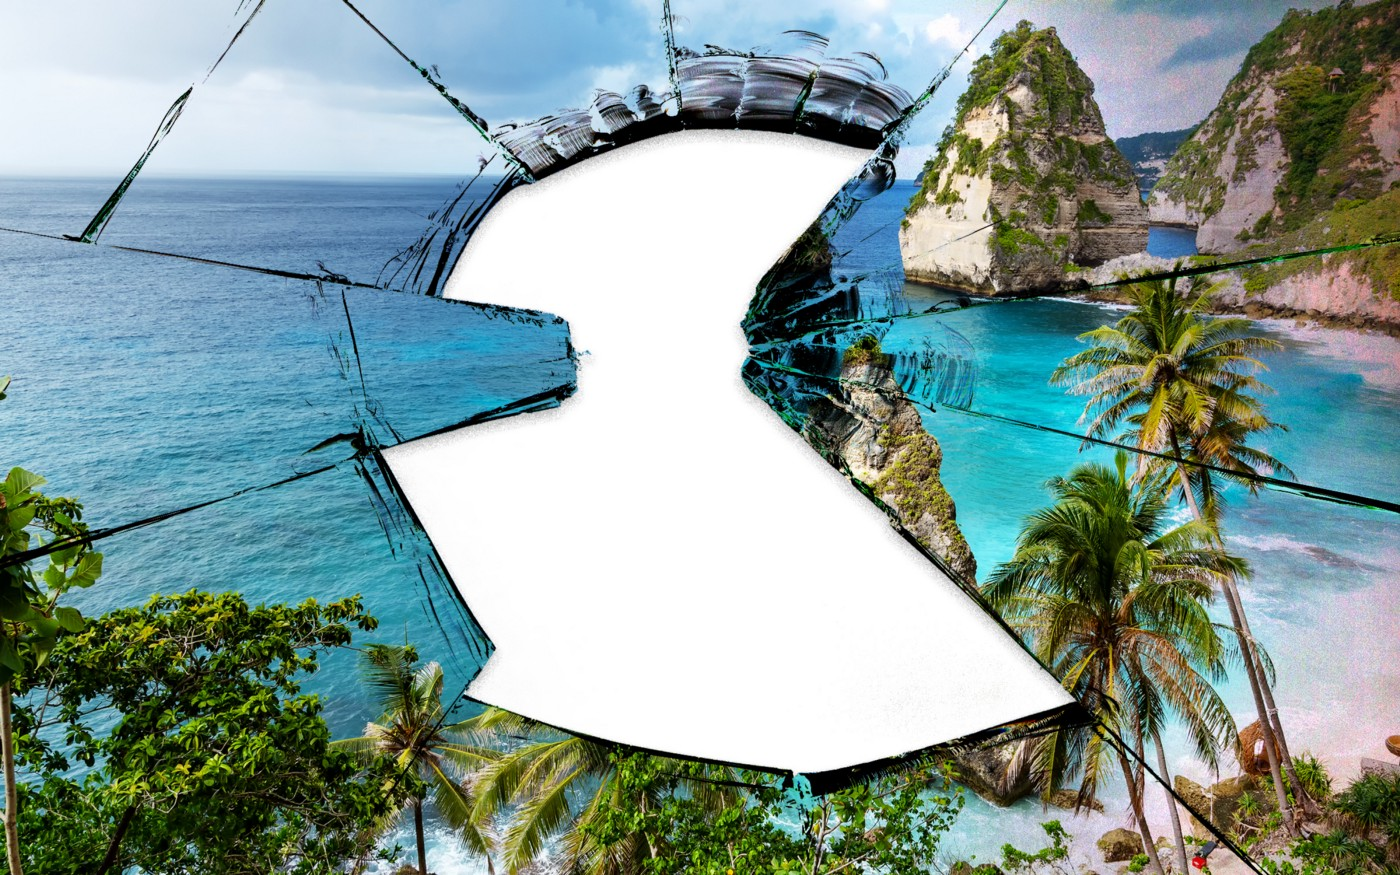 A photo illustration of a beach view of Bali shattered like glass with a giant hole in the middle.